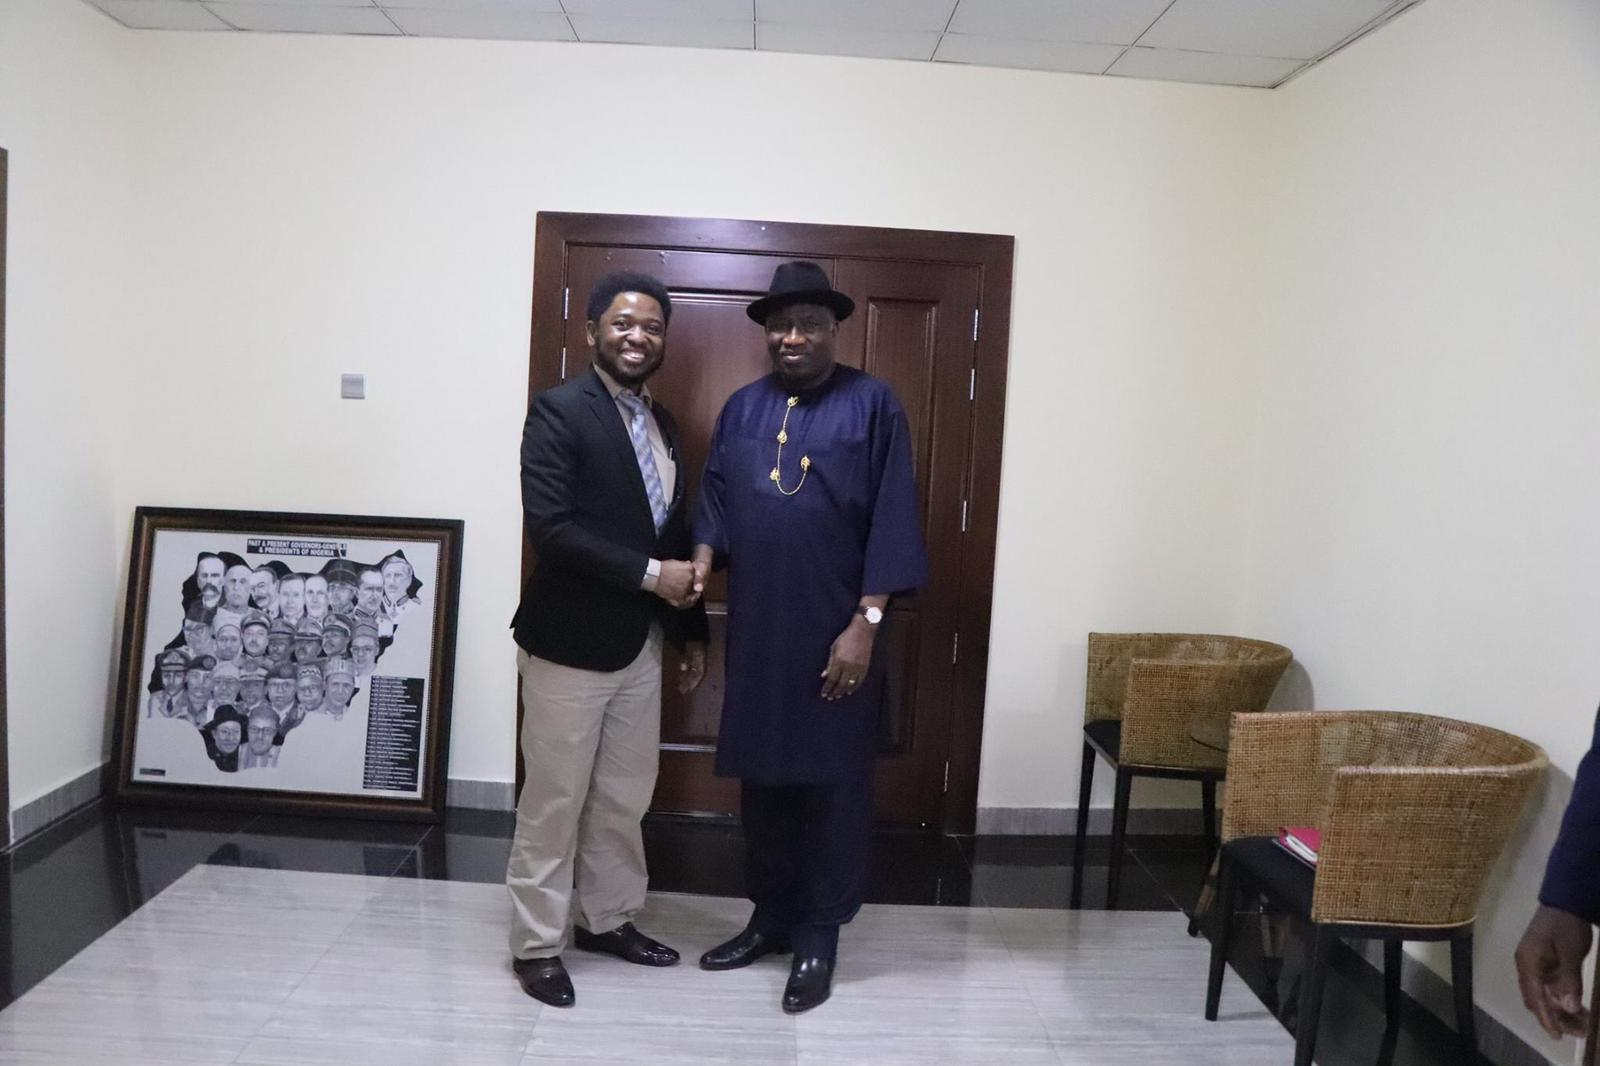 Meeting with His Excellency President Goodluck Jonathan, President of Nigeria.